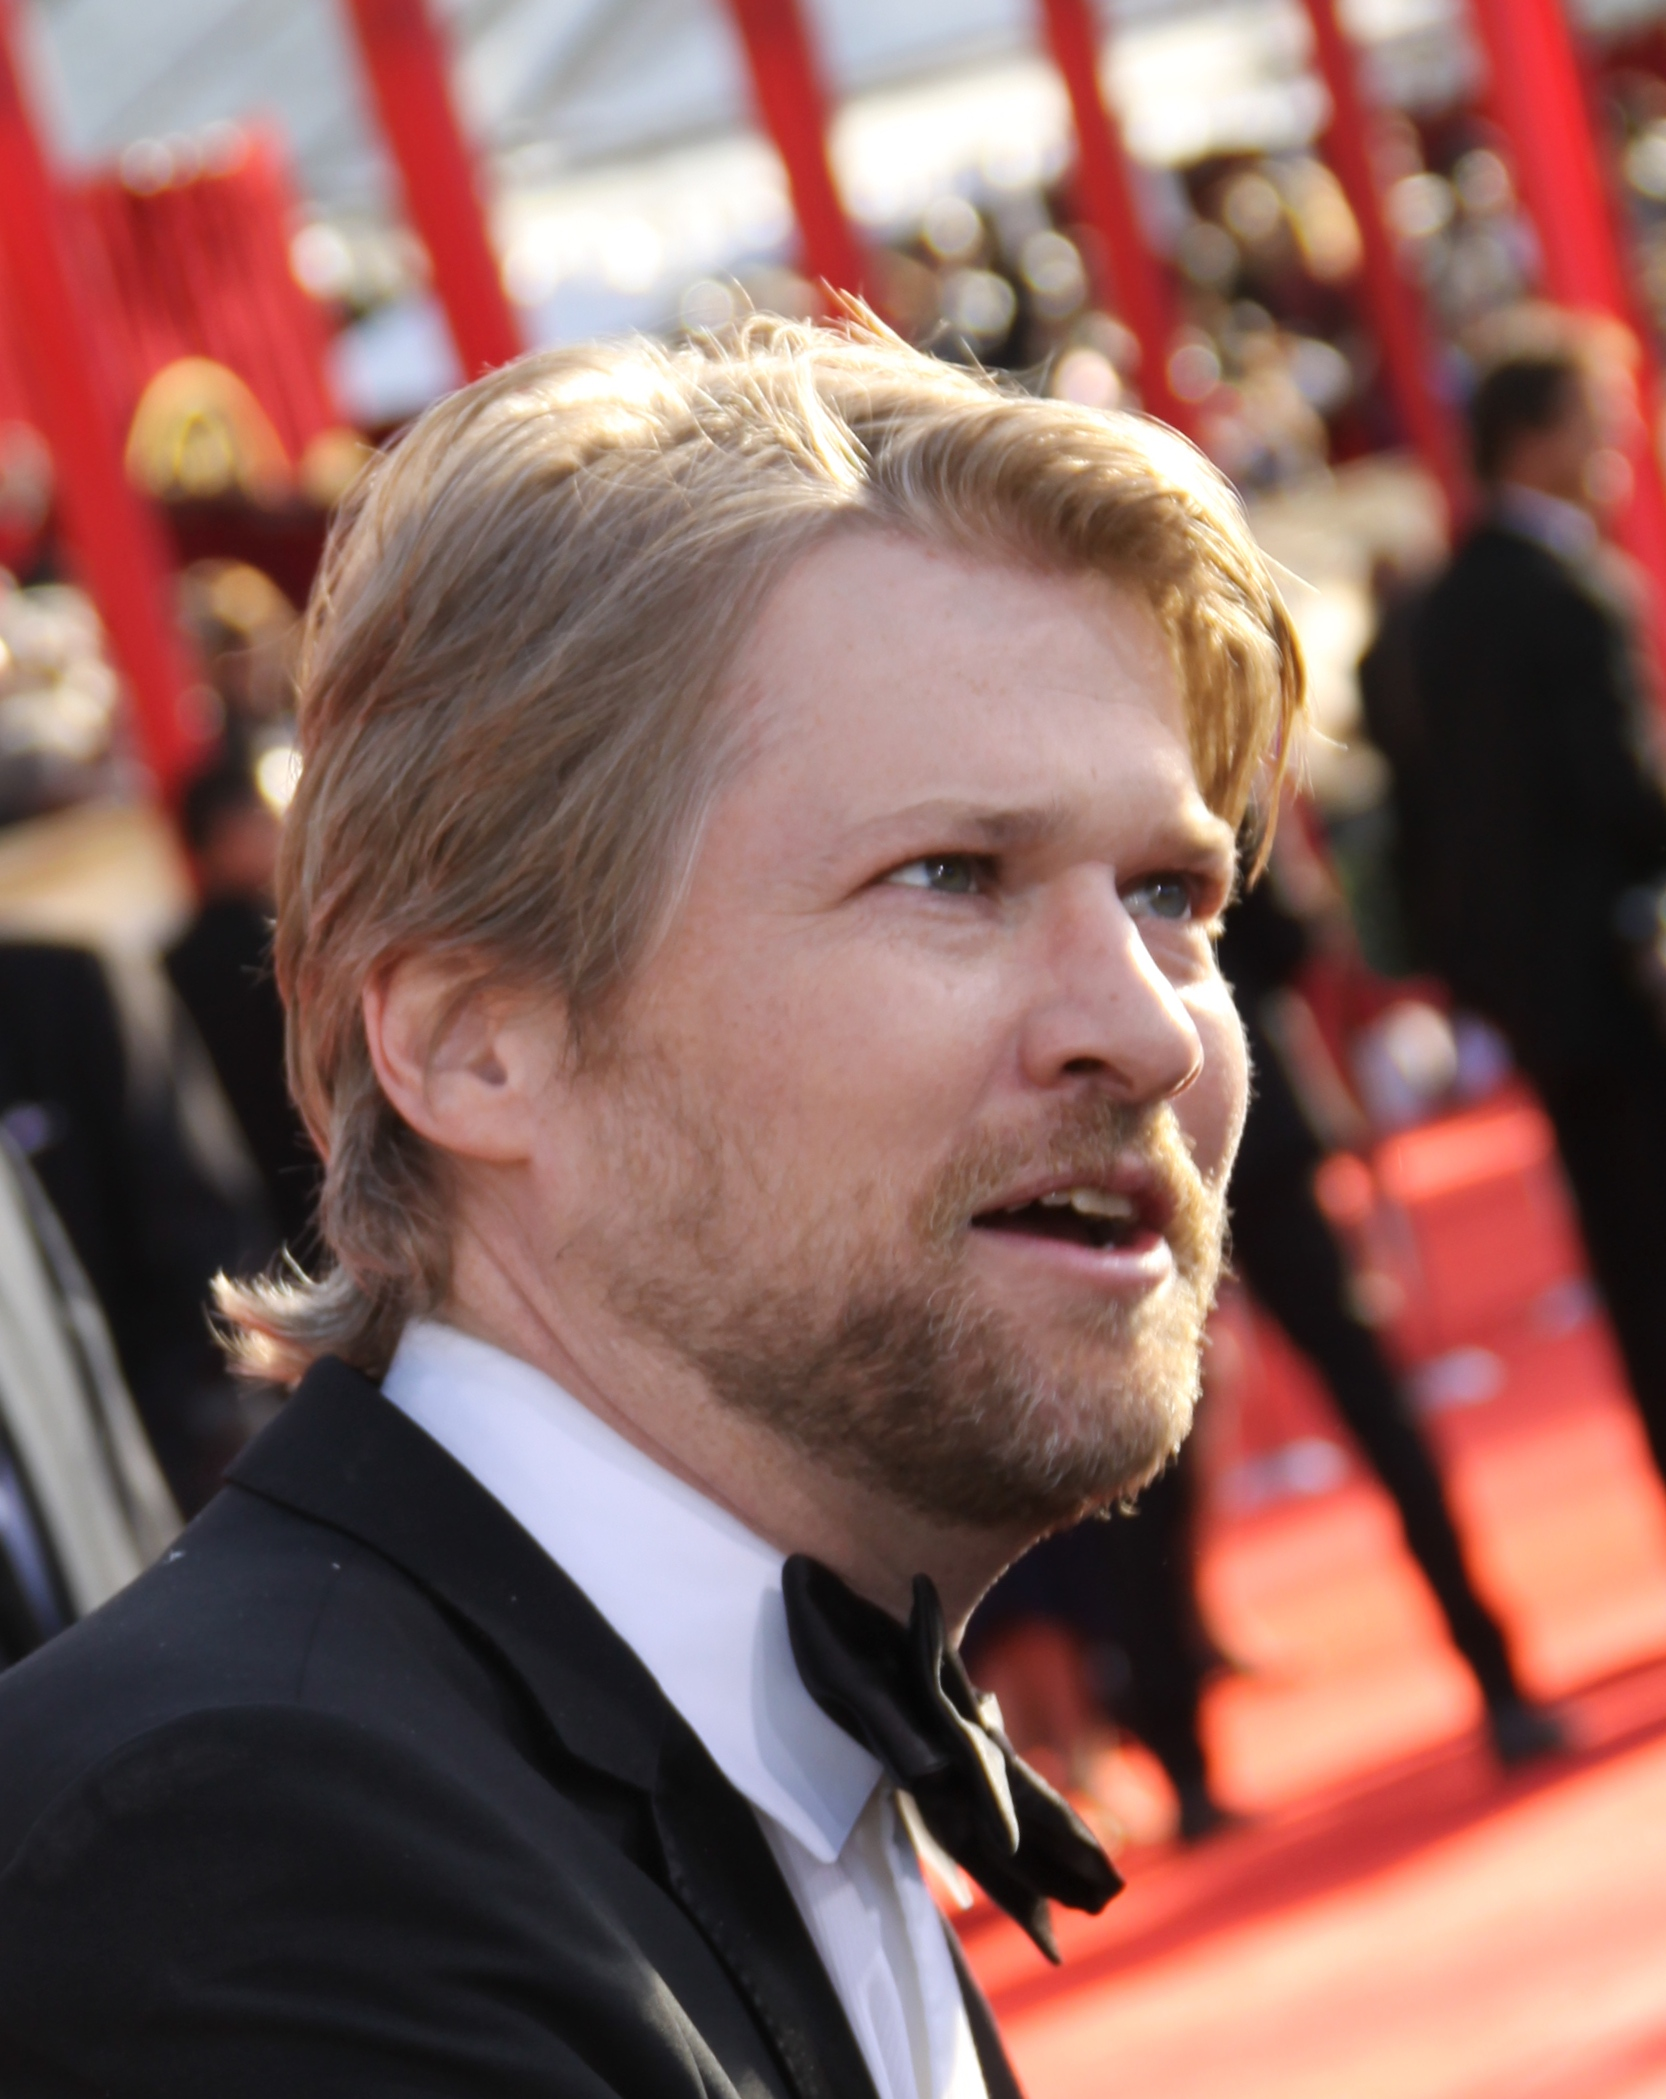 The 41-year old son of father (?) and mother(?) Todd Lowe in 2018 photo. Todd Lowe earned a  million dollar salary - leaving the net worth at 2 million in 2018